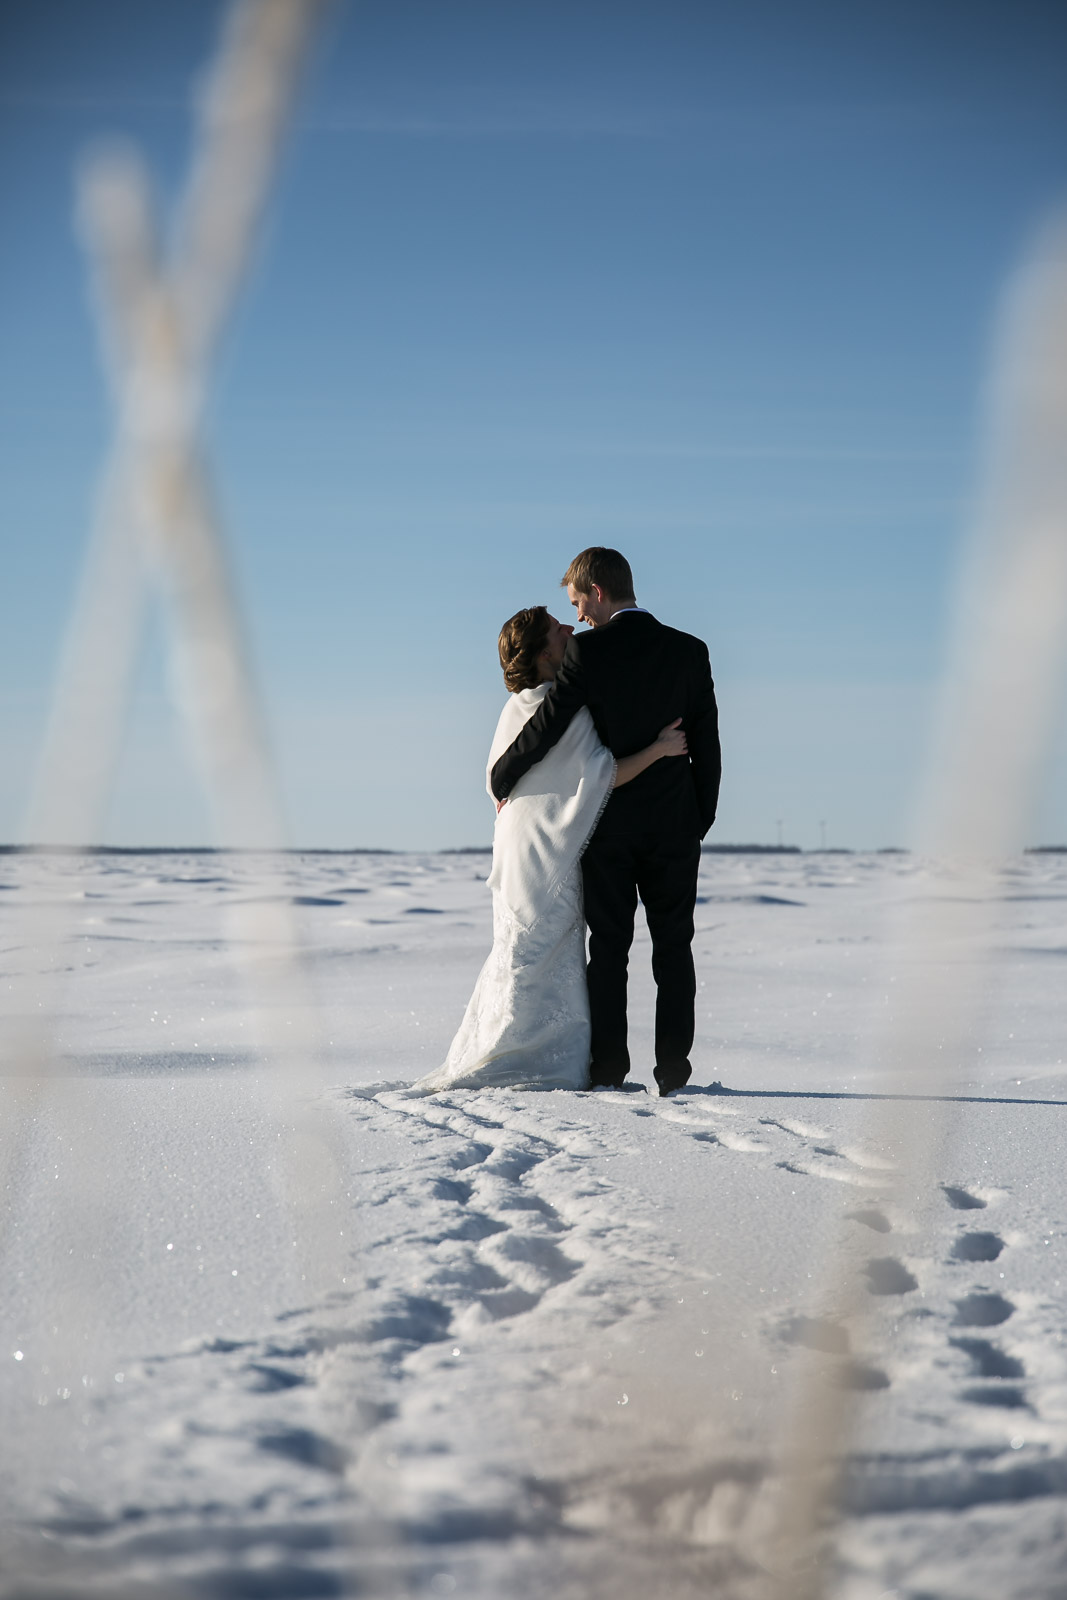 Winter wedding photo session in Oulu, Finland | Thais FK